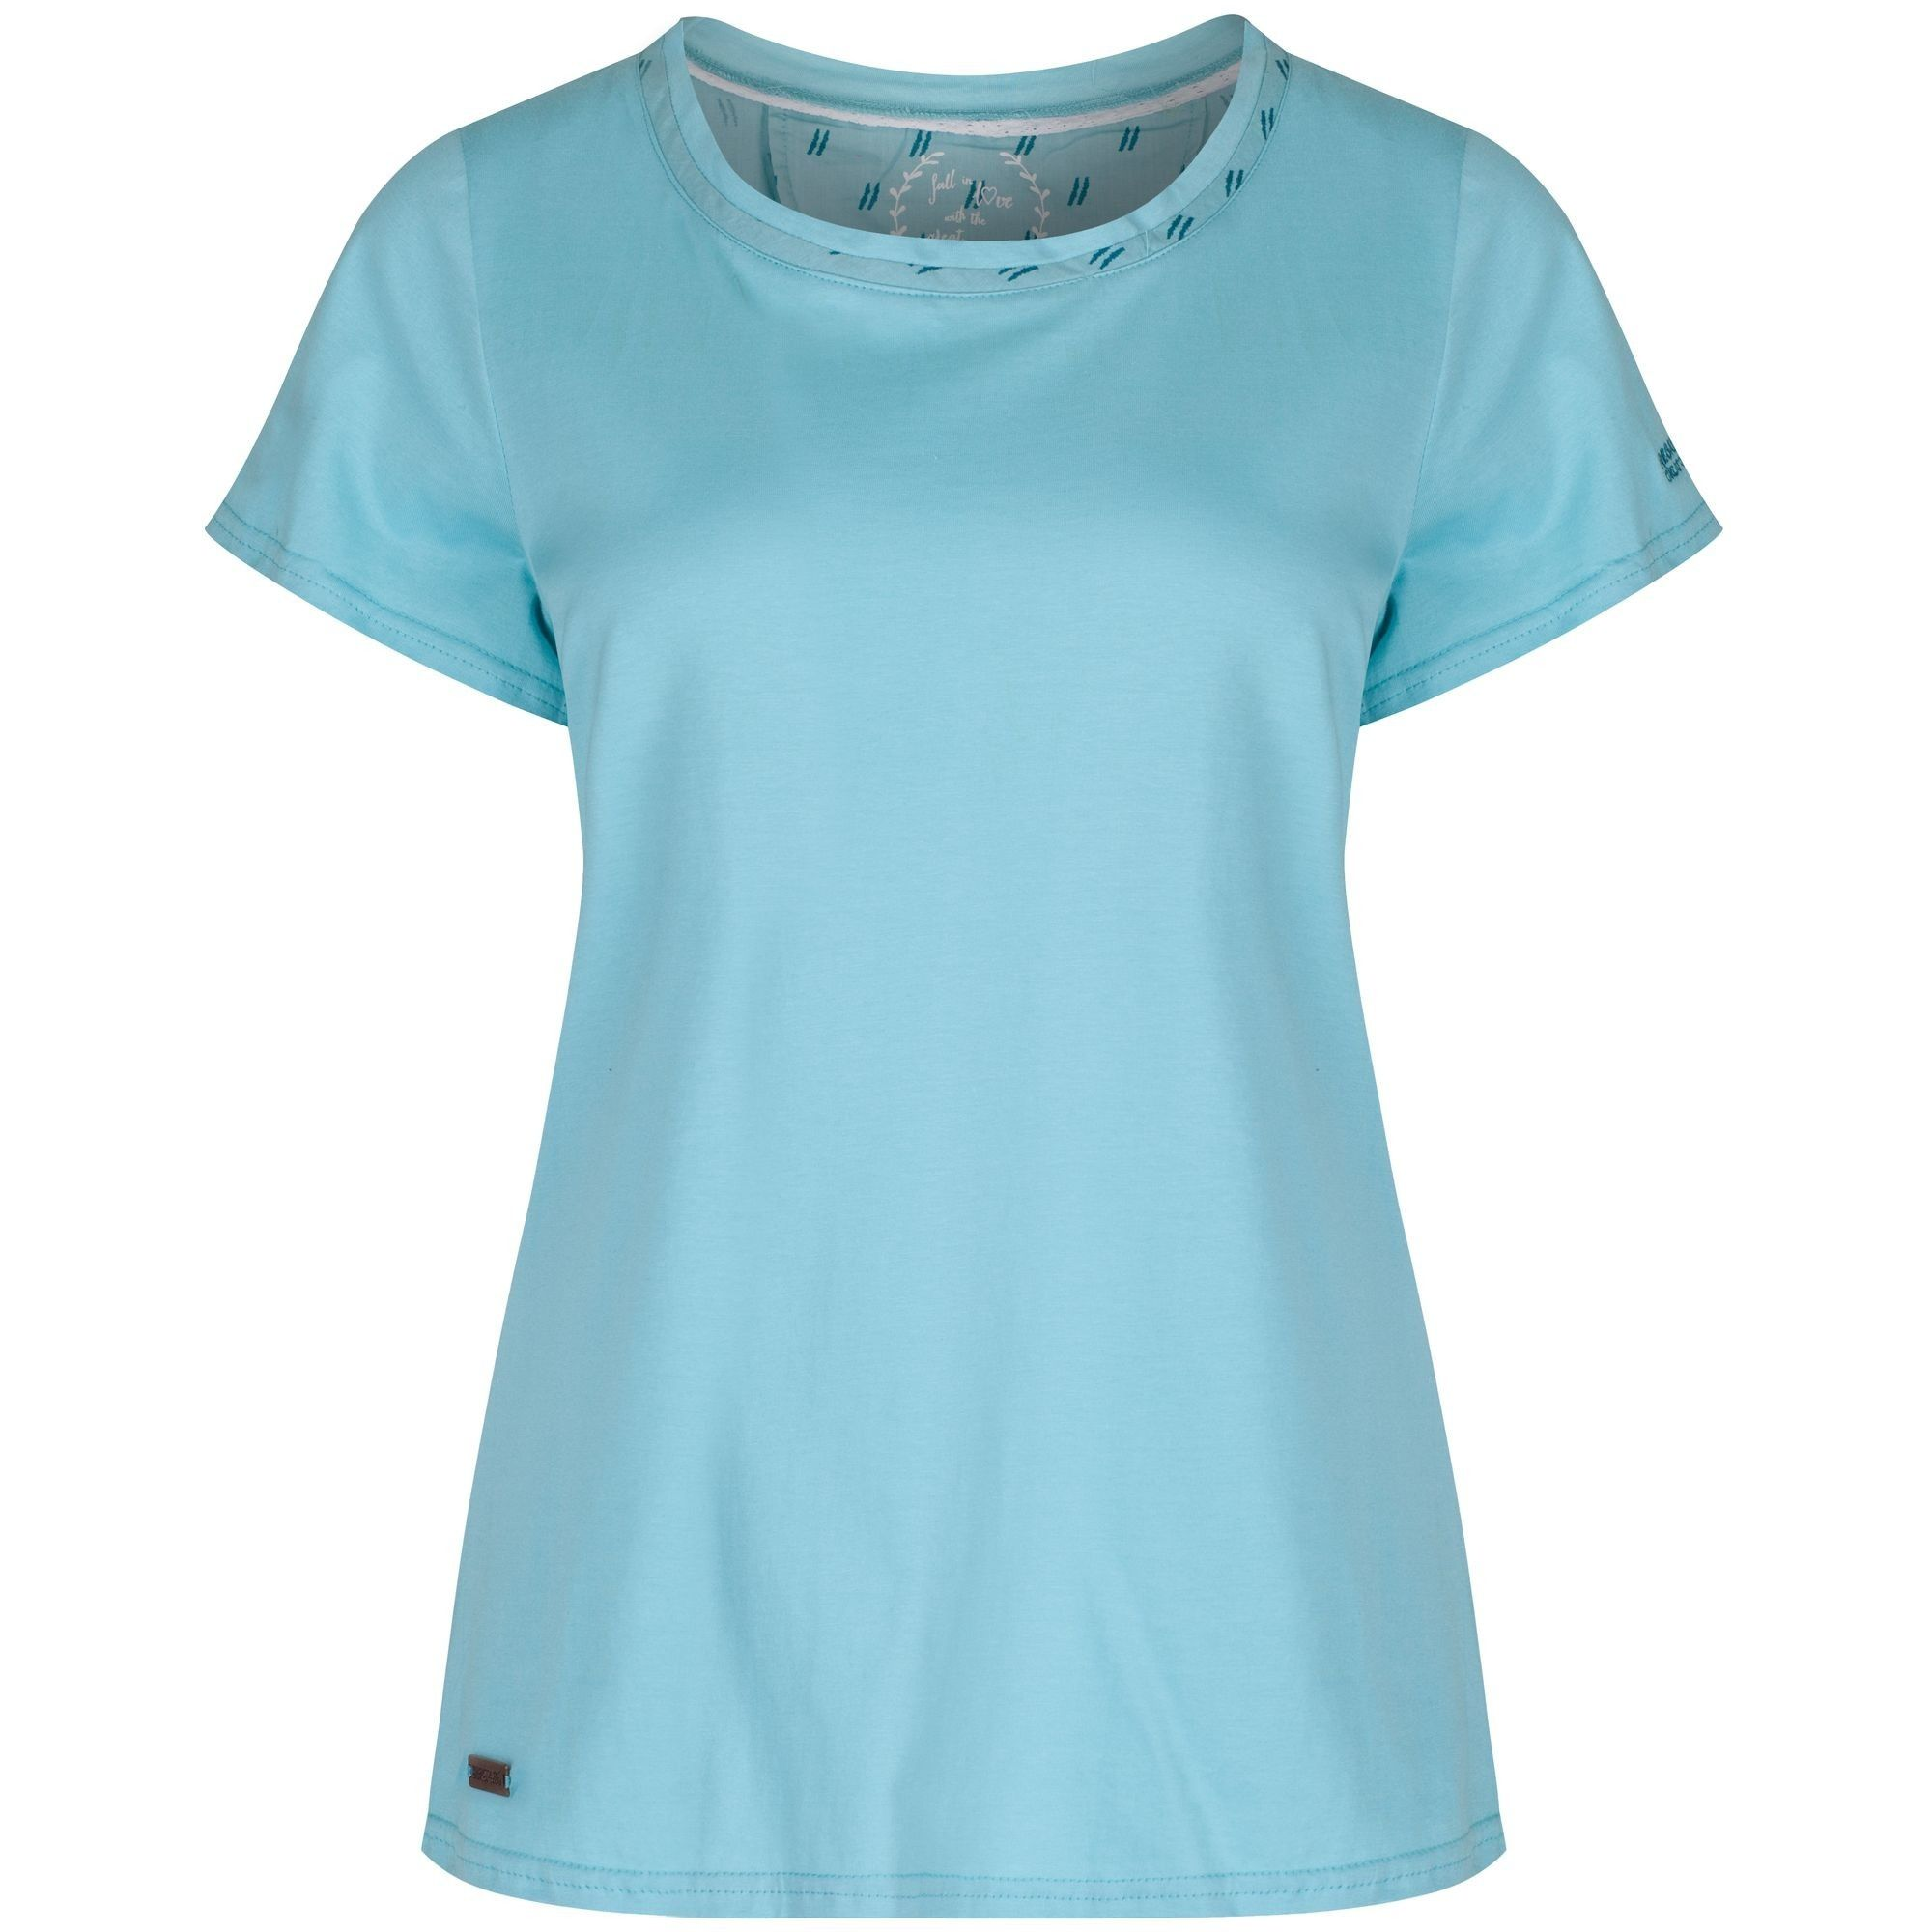 Regatta Great Outdoors Womens/Ladies Aleesha Short Sleeve Top